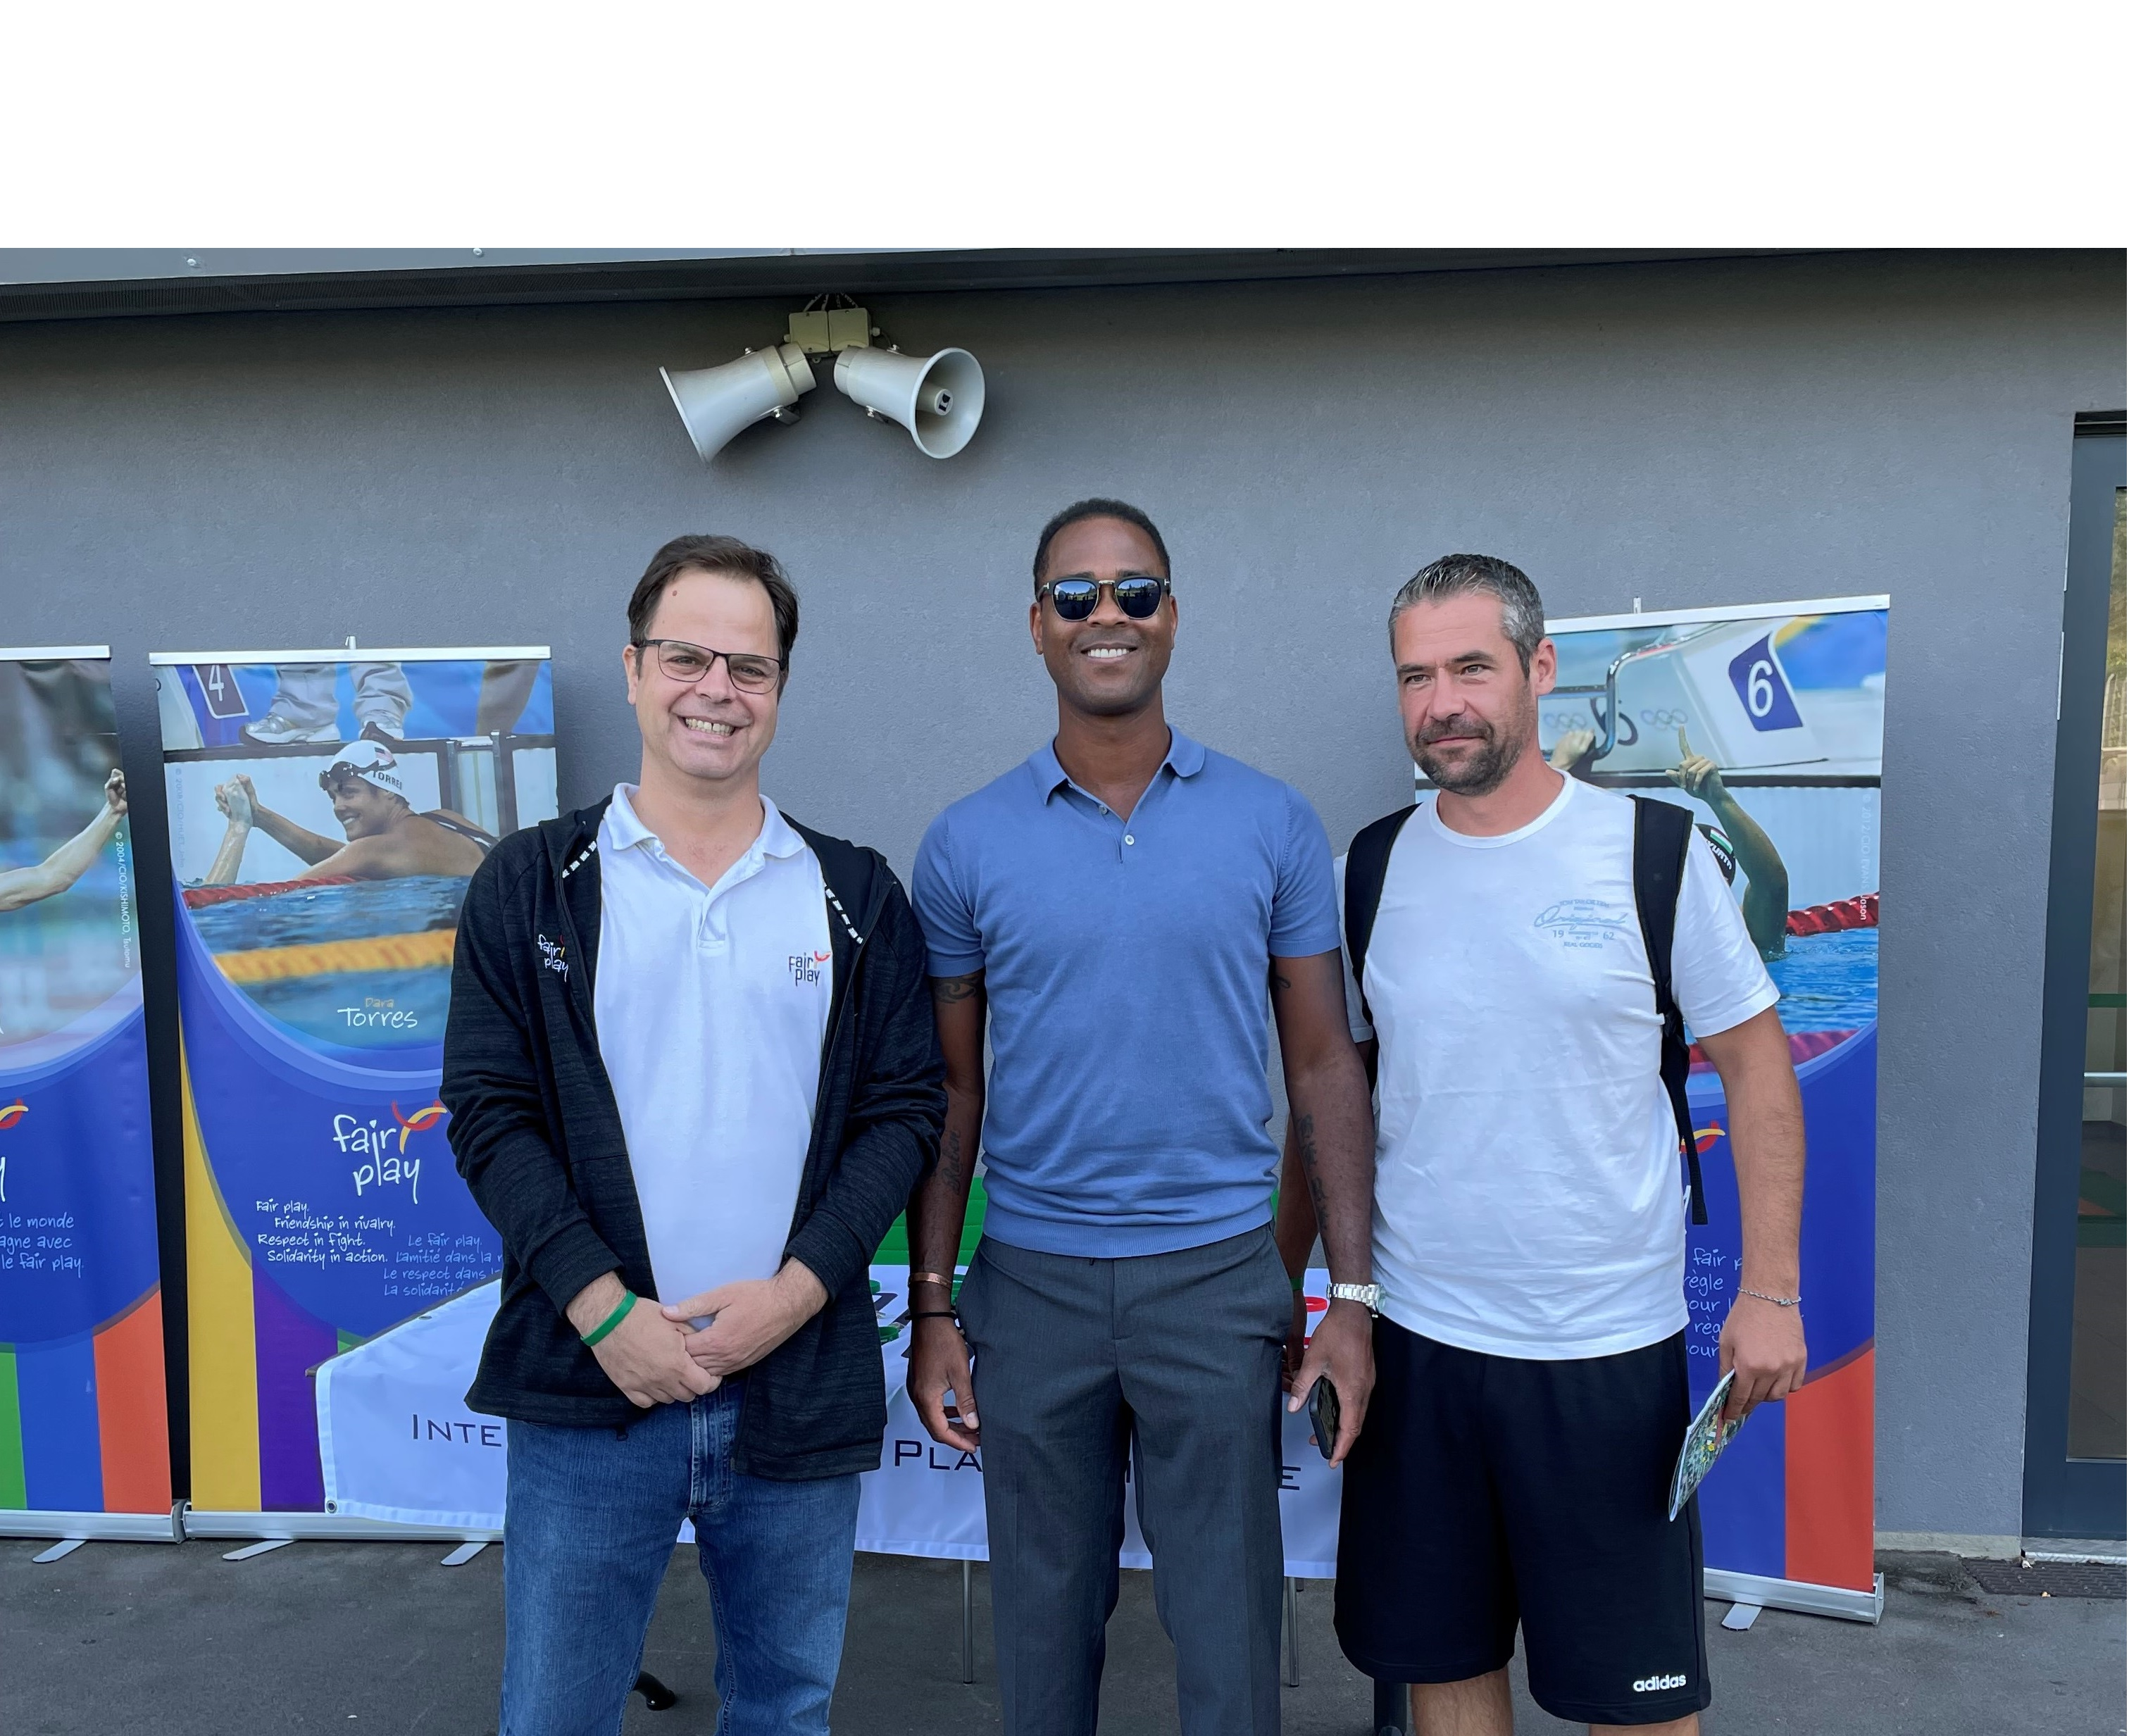 Green days on green pitch and meeting Patrick Kluivert